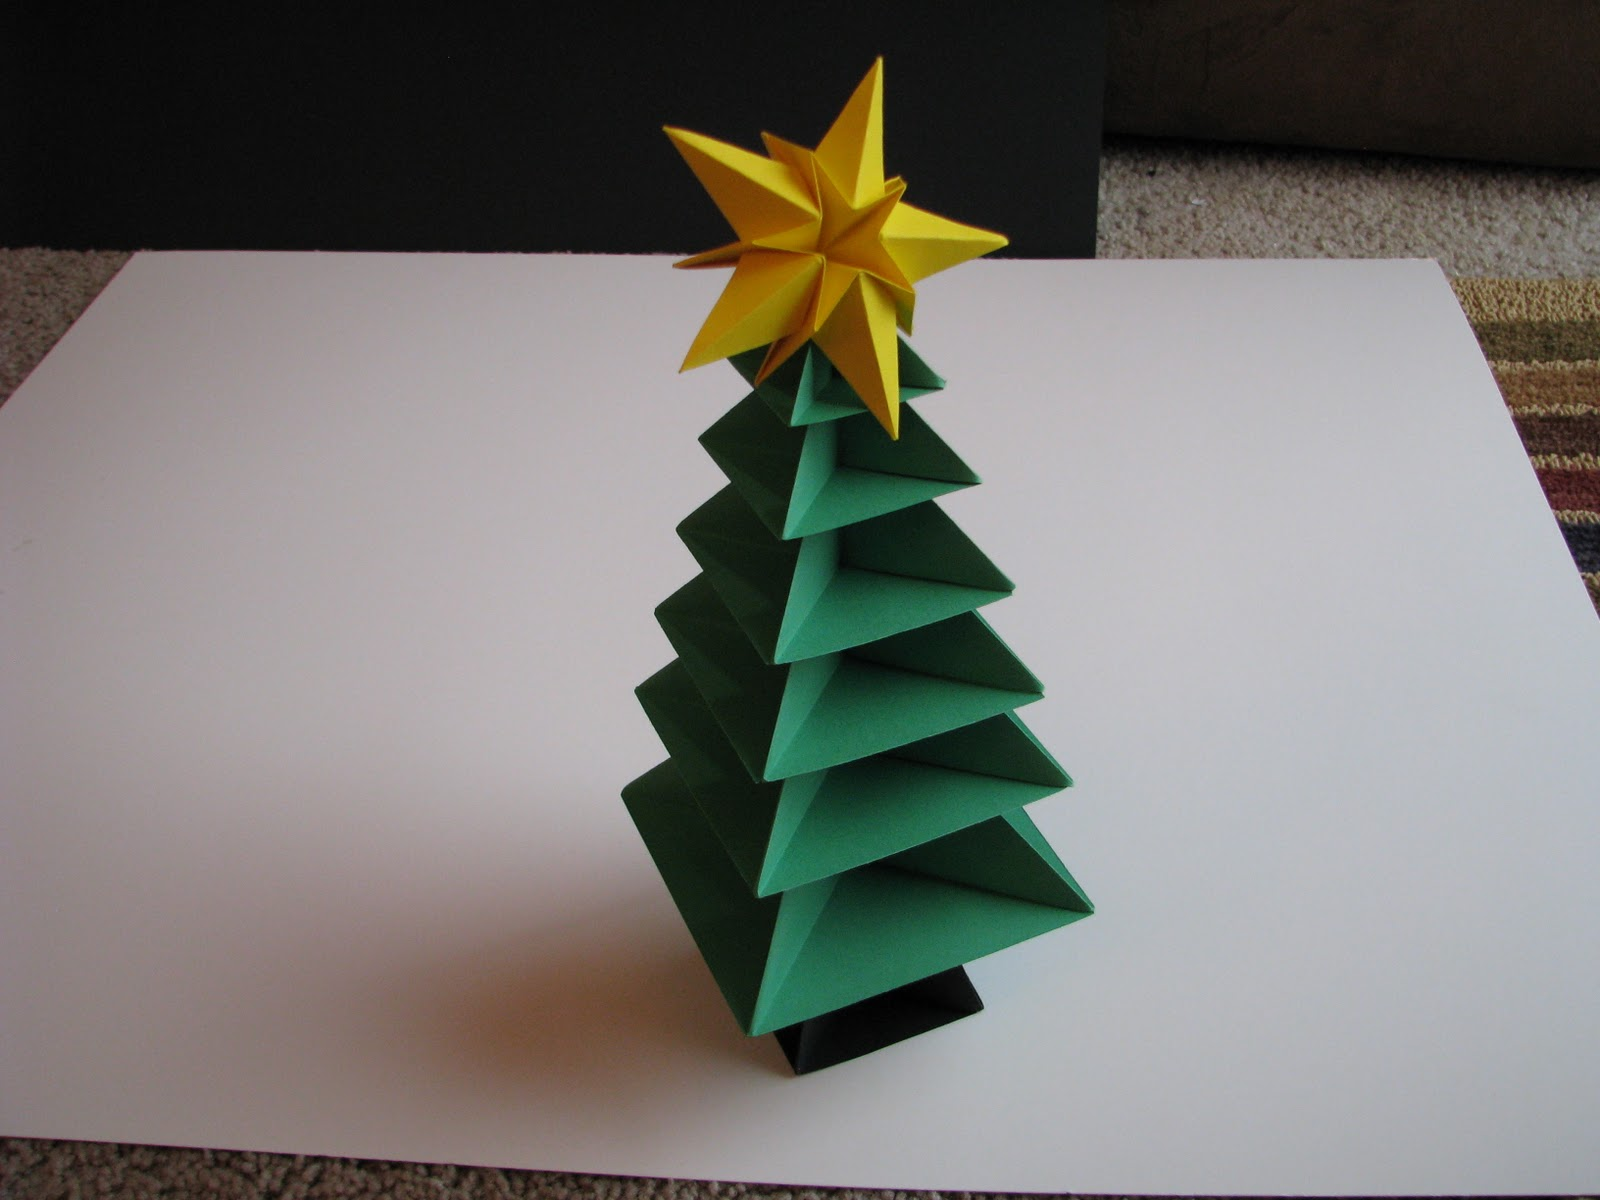 Pleasing christmas tree origami